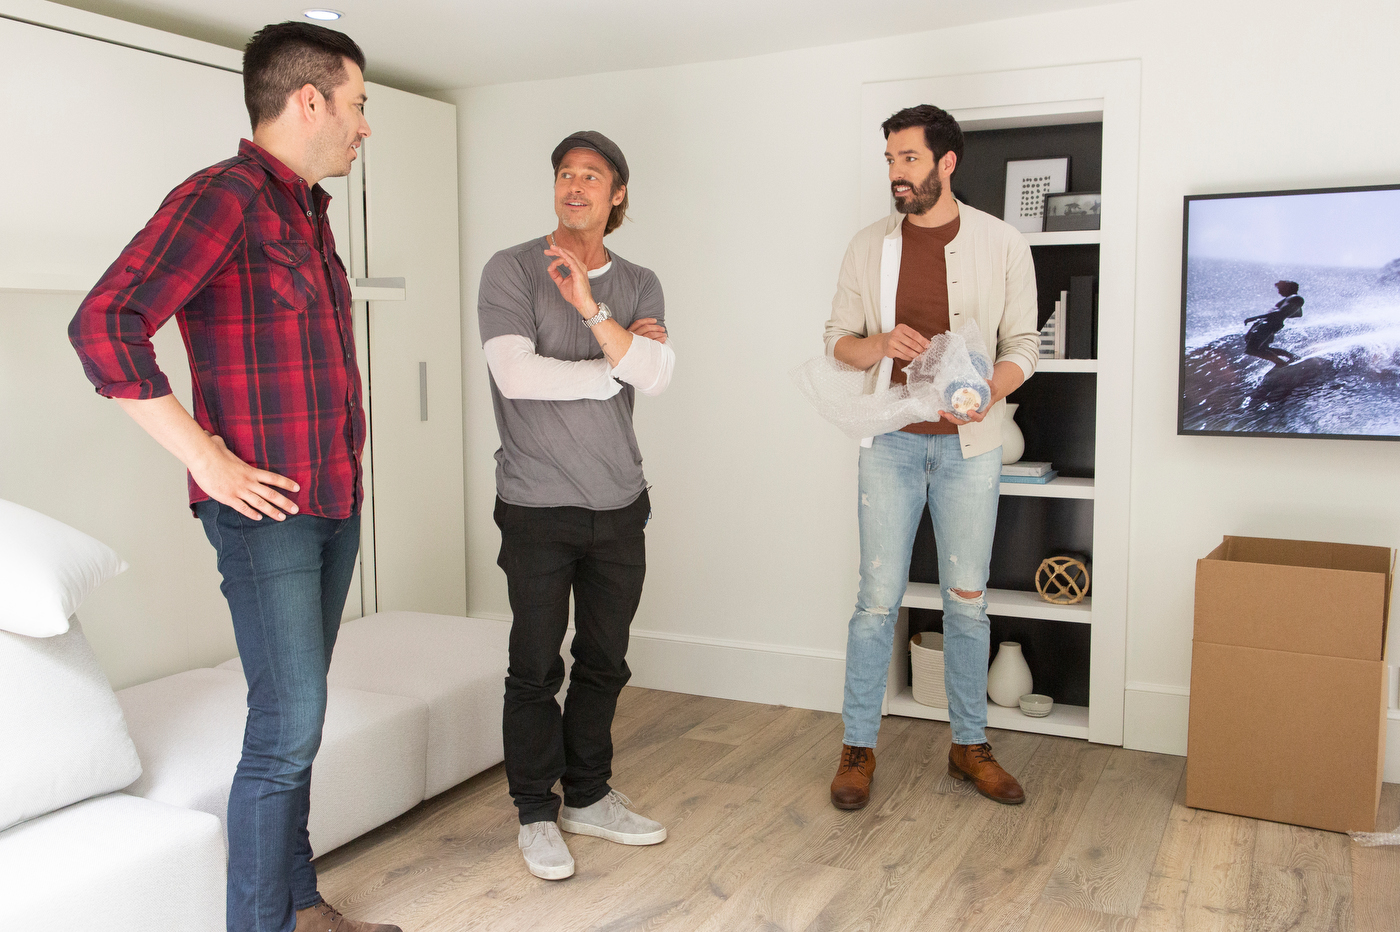 Brad Pitt and hosts Drew Scott (R) and Jonathan Scott (L) discuss the renovation of the garage of Jean Black, Brad Pitt's make-up artist and friend for 27 years. With the help of Brad Pitt, hosts Drew Scott and Jonathan Scott have transformed Jean's garage into a modern guest suite, in Santa Monica, California, as seen on Celebrity I.O.U.